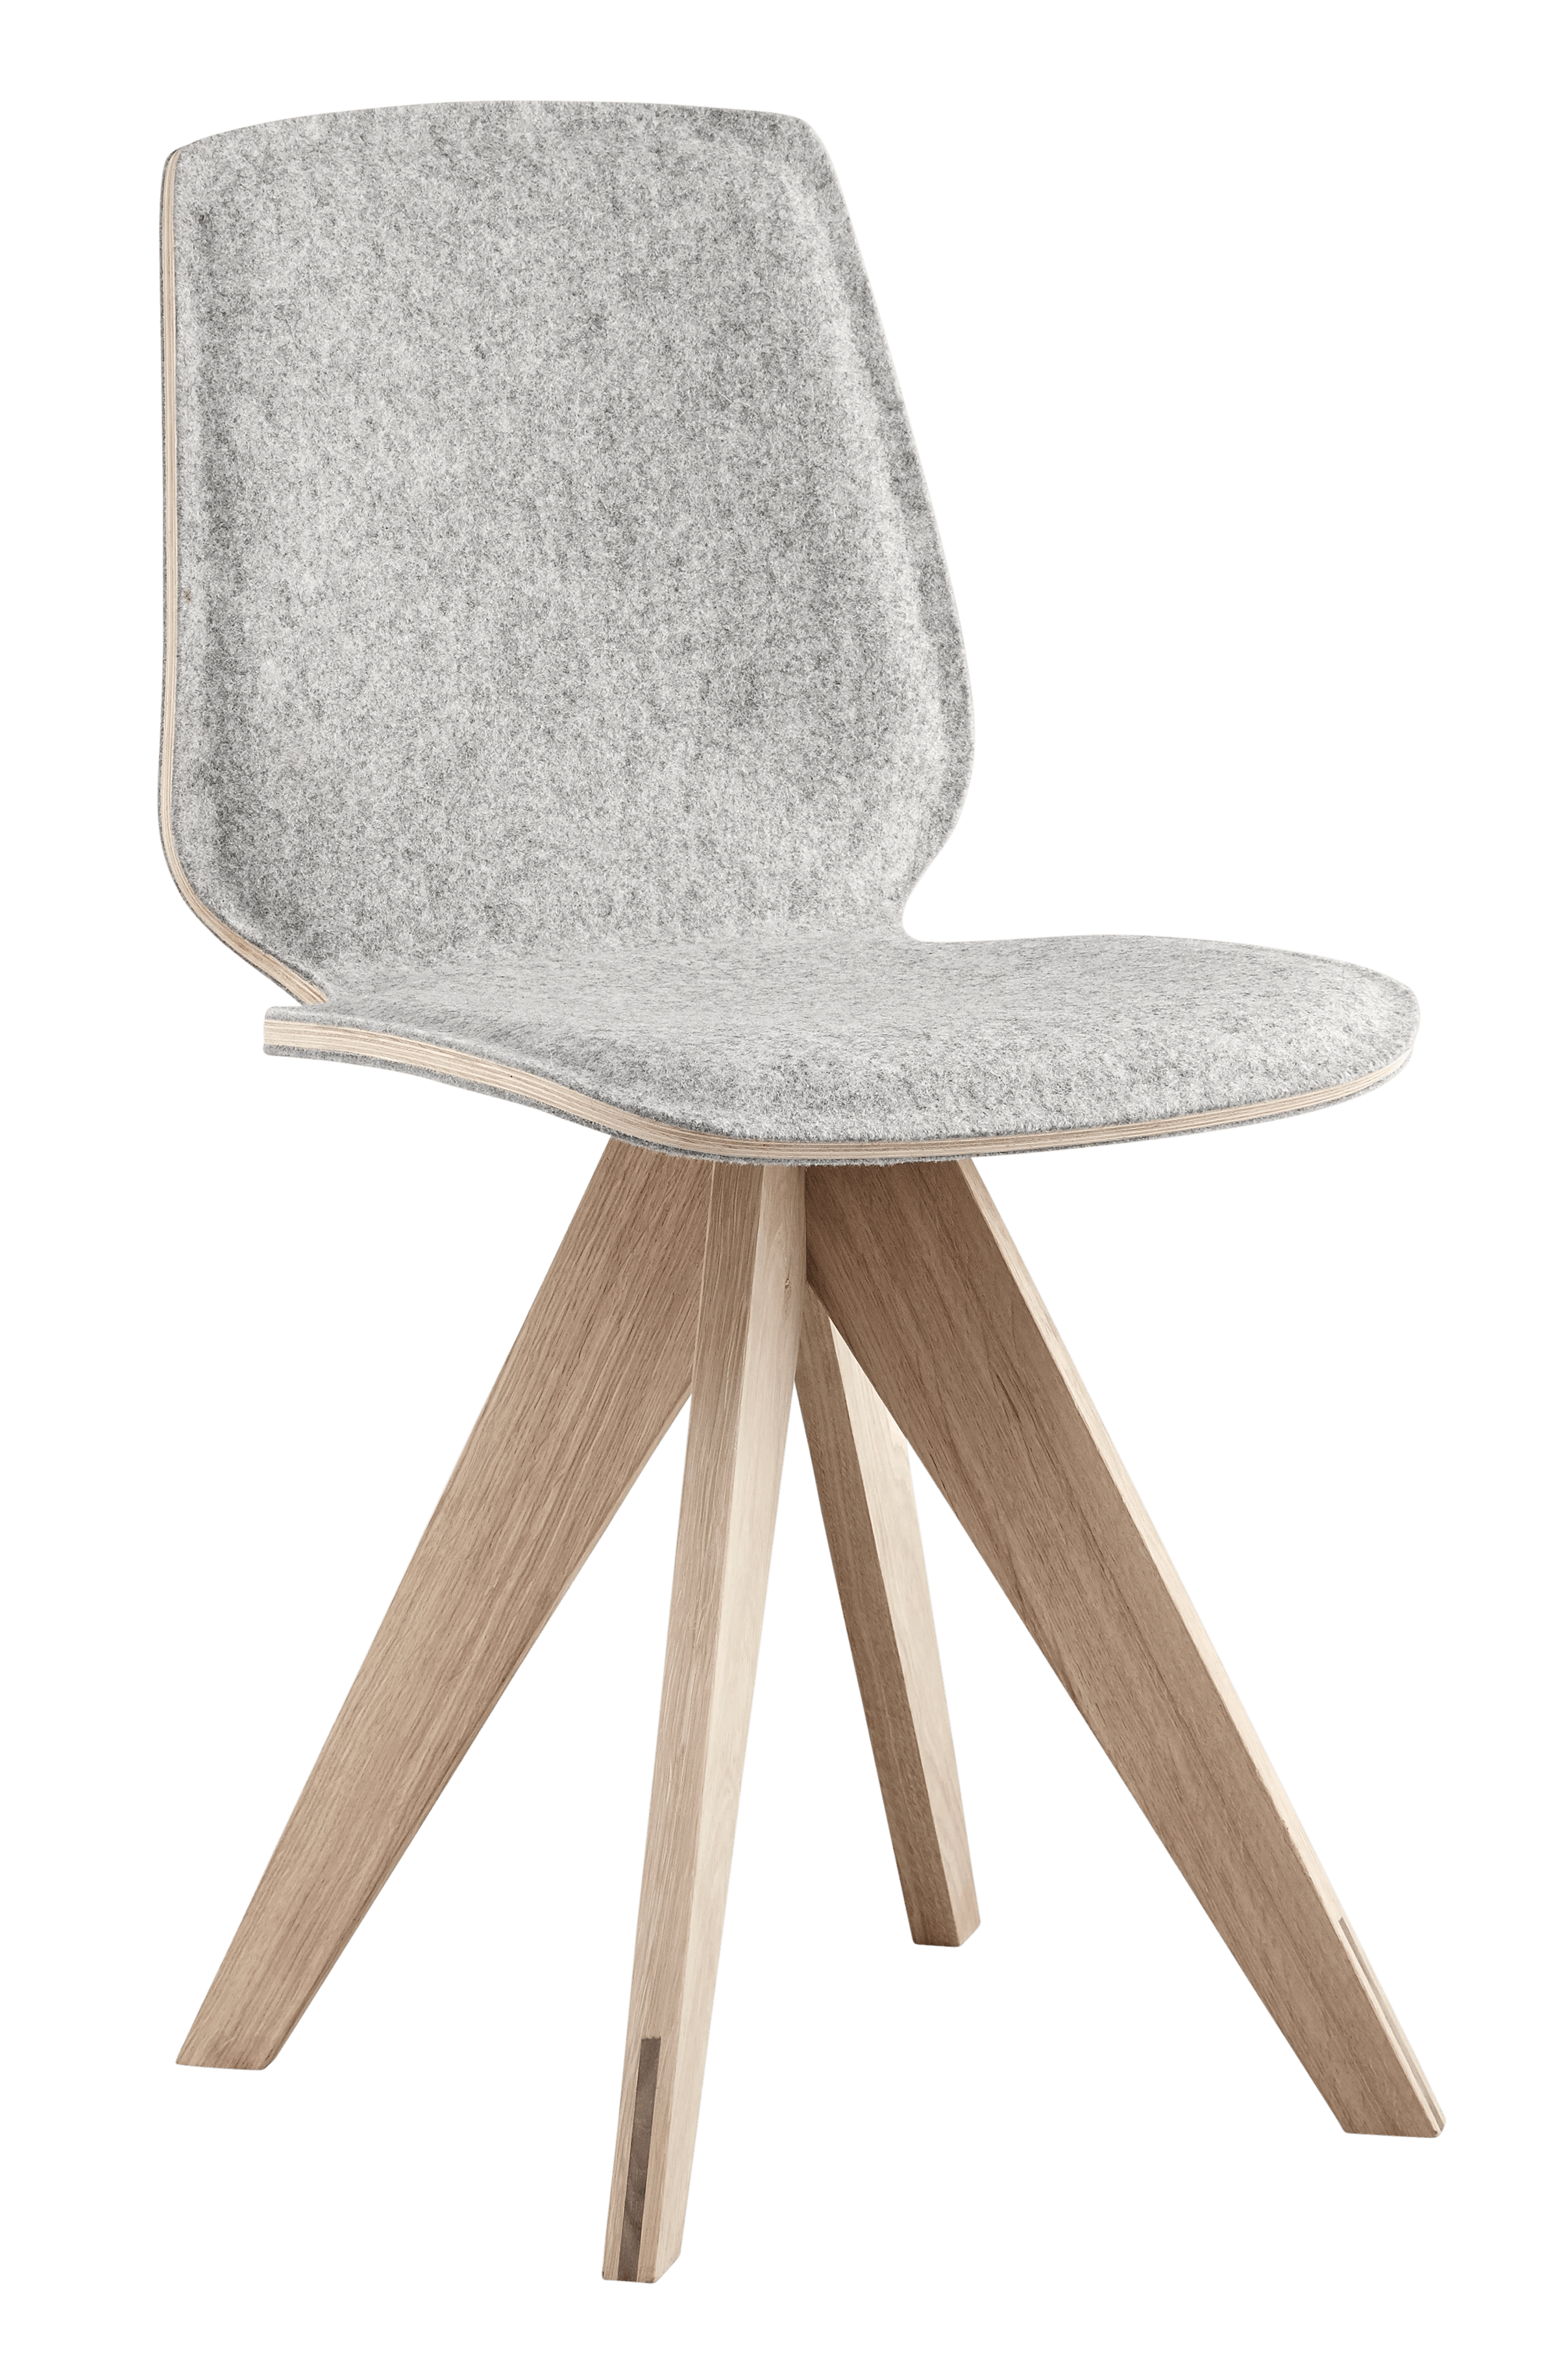 bolia grey upholstered mood dining chair haute living